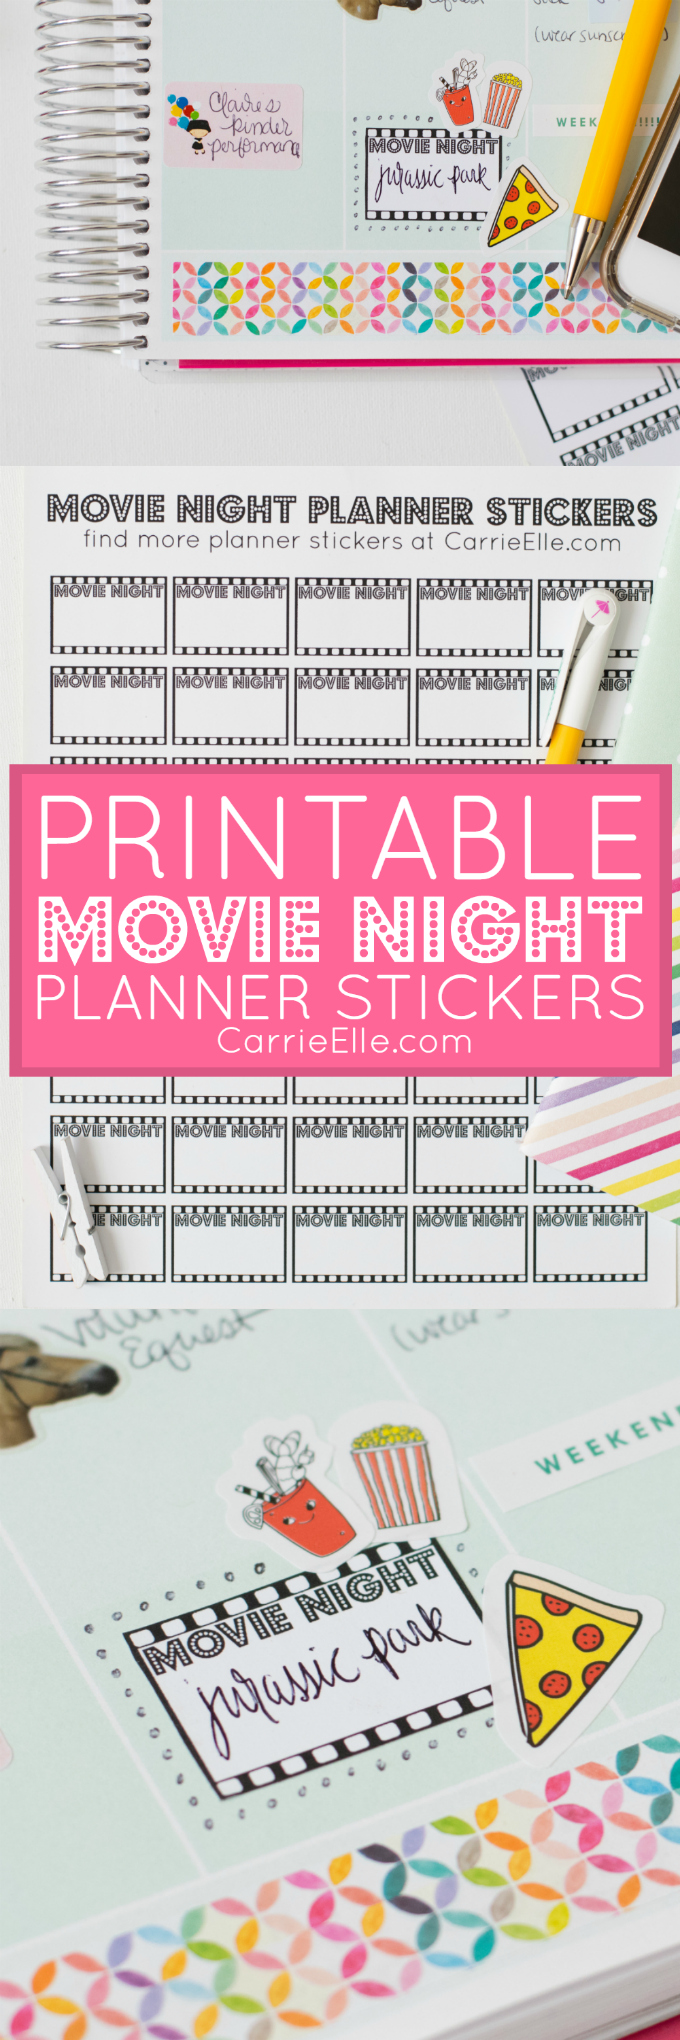 Printable Movie Night Planner Stickers